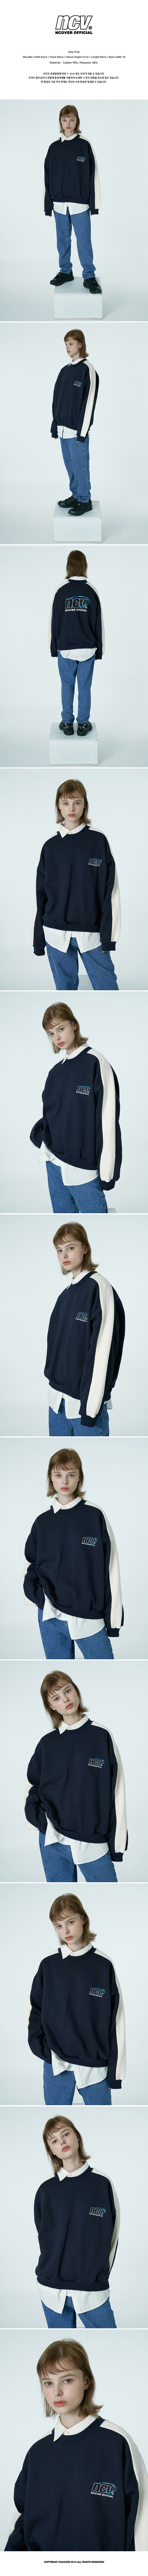 Quarter ellipse logo sweatshirt-navy.jpg